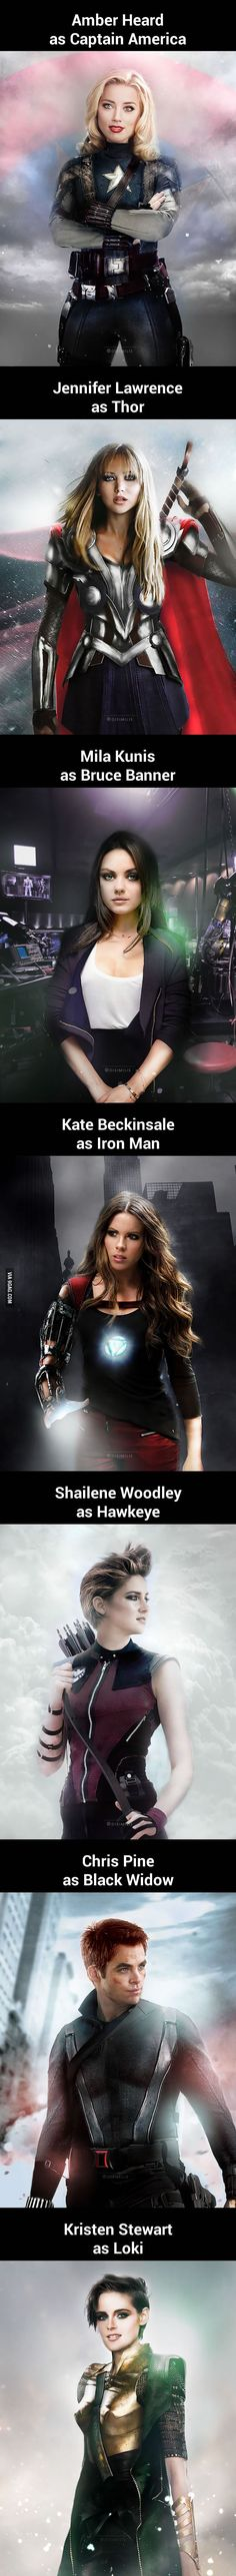 Genderbend Marvel and actors